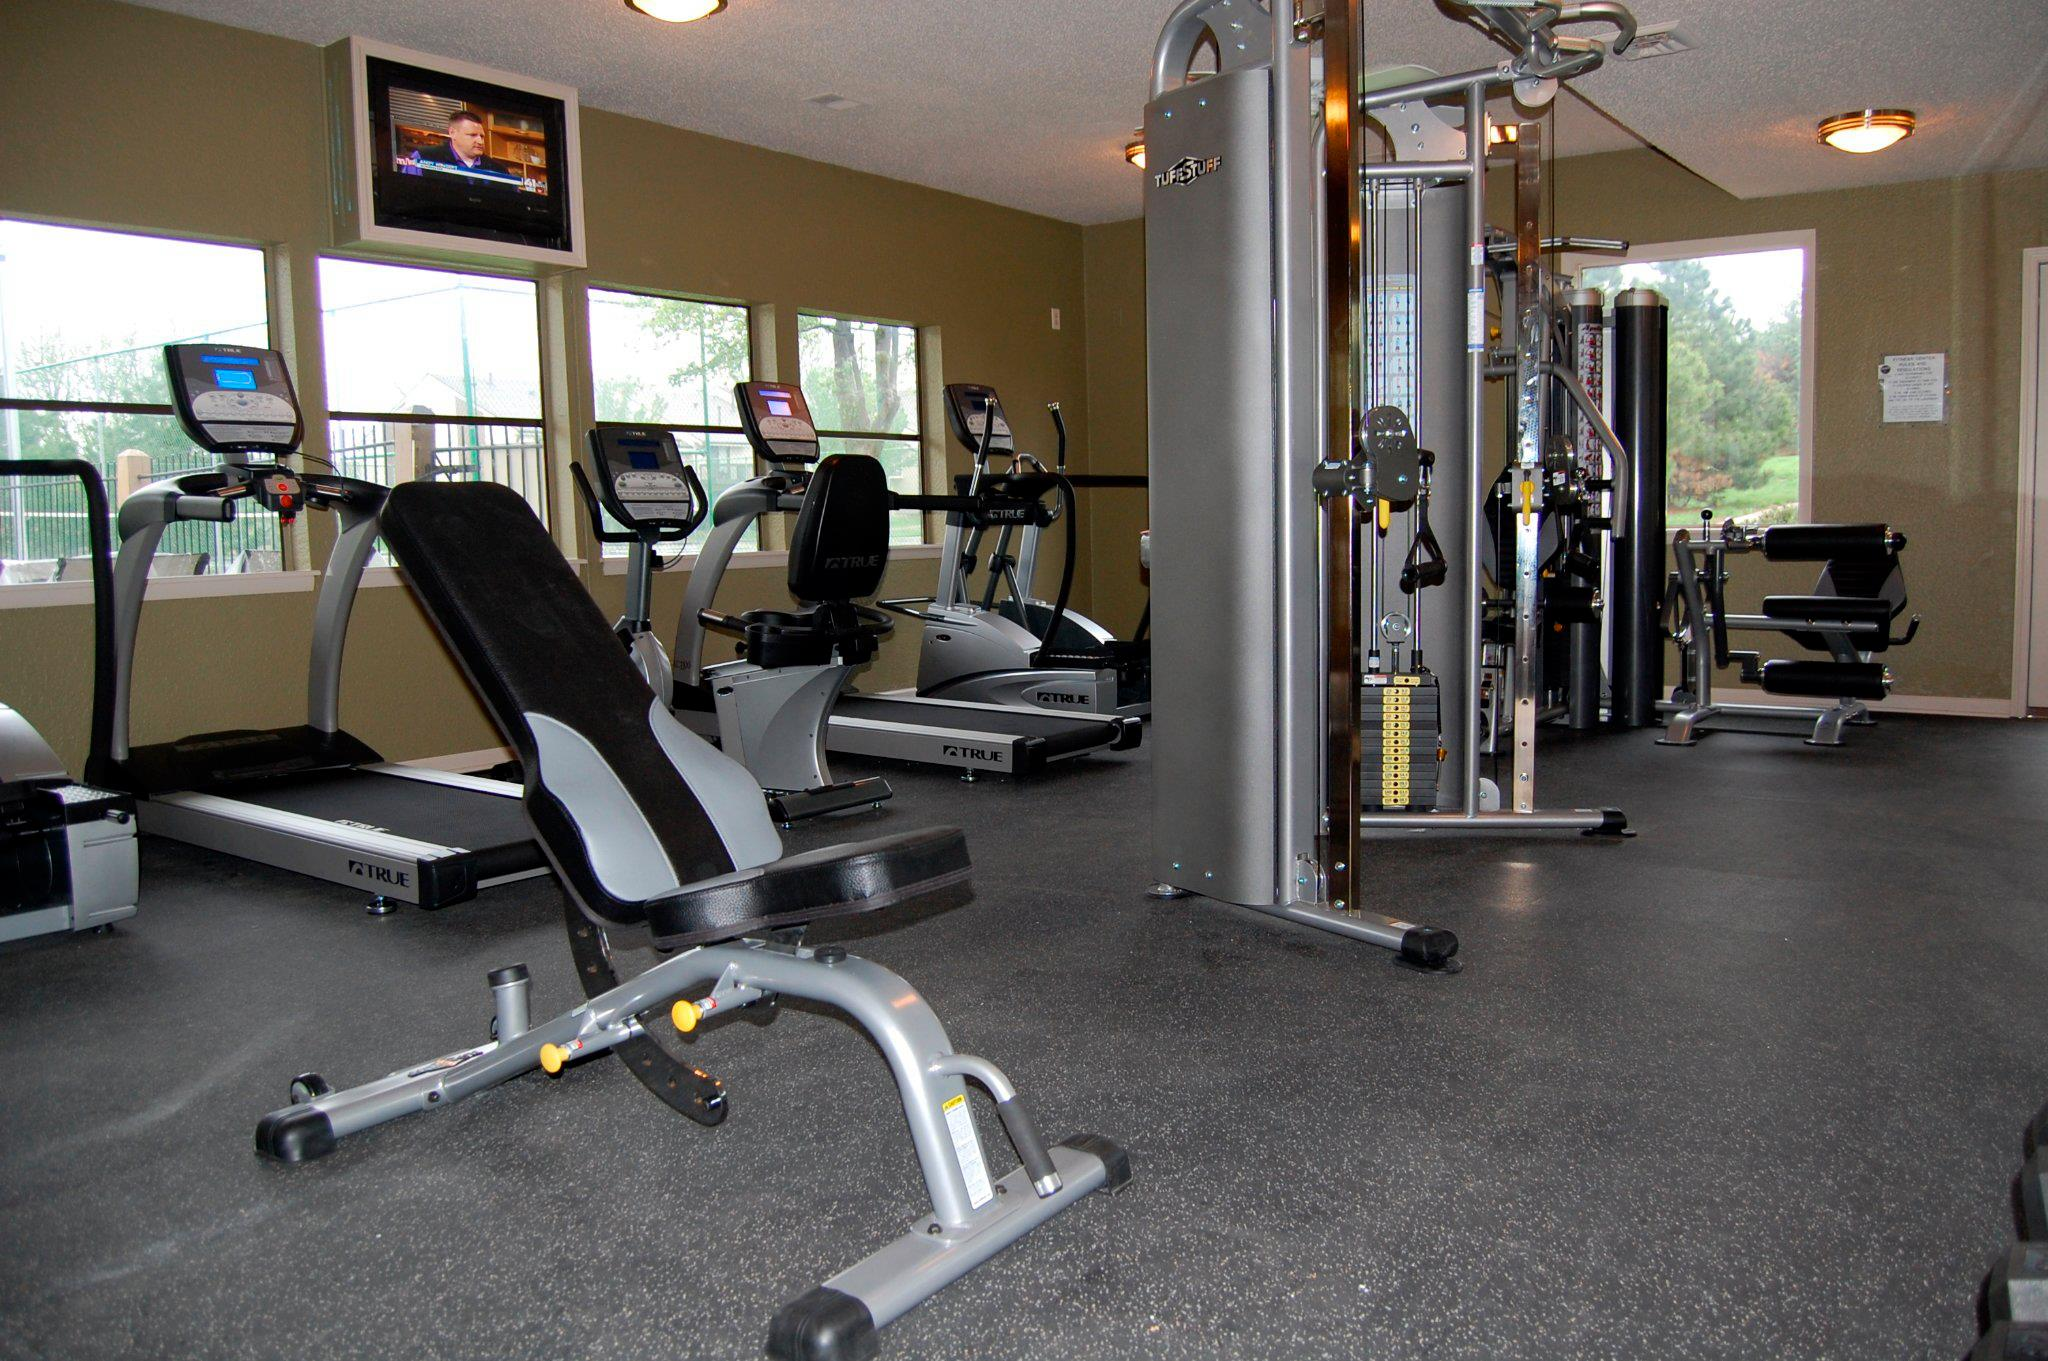 Autumn Park Apartment - Commercial Install by Fitness Gallery